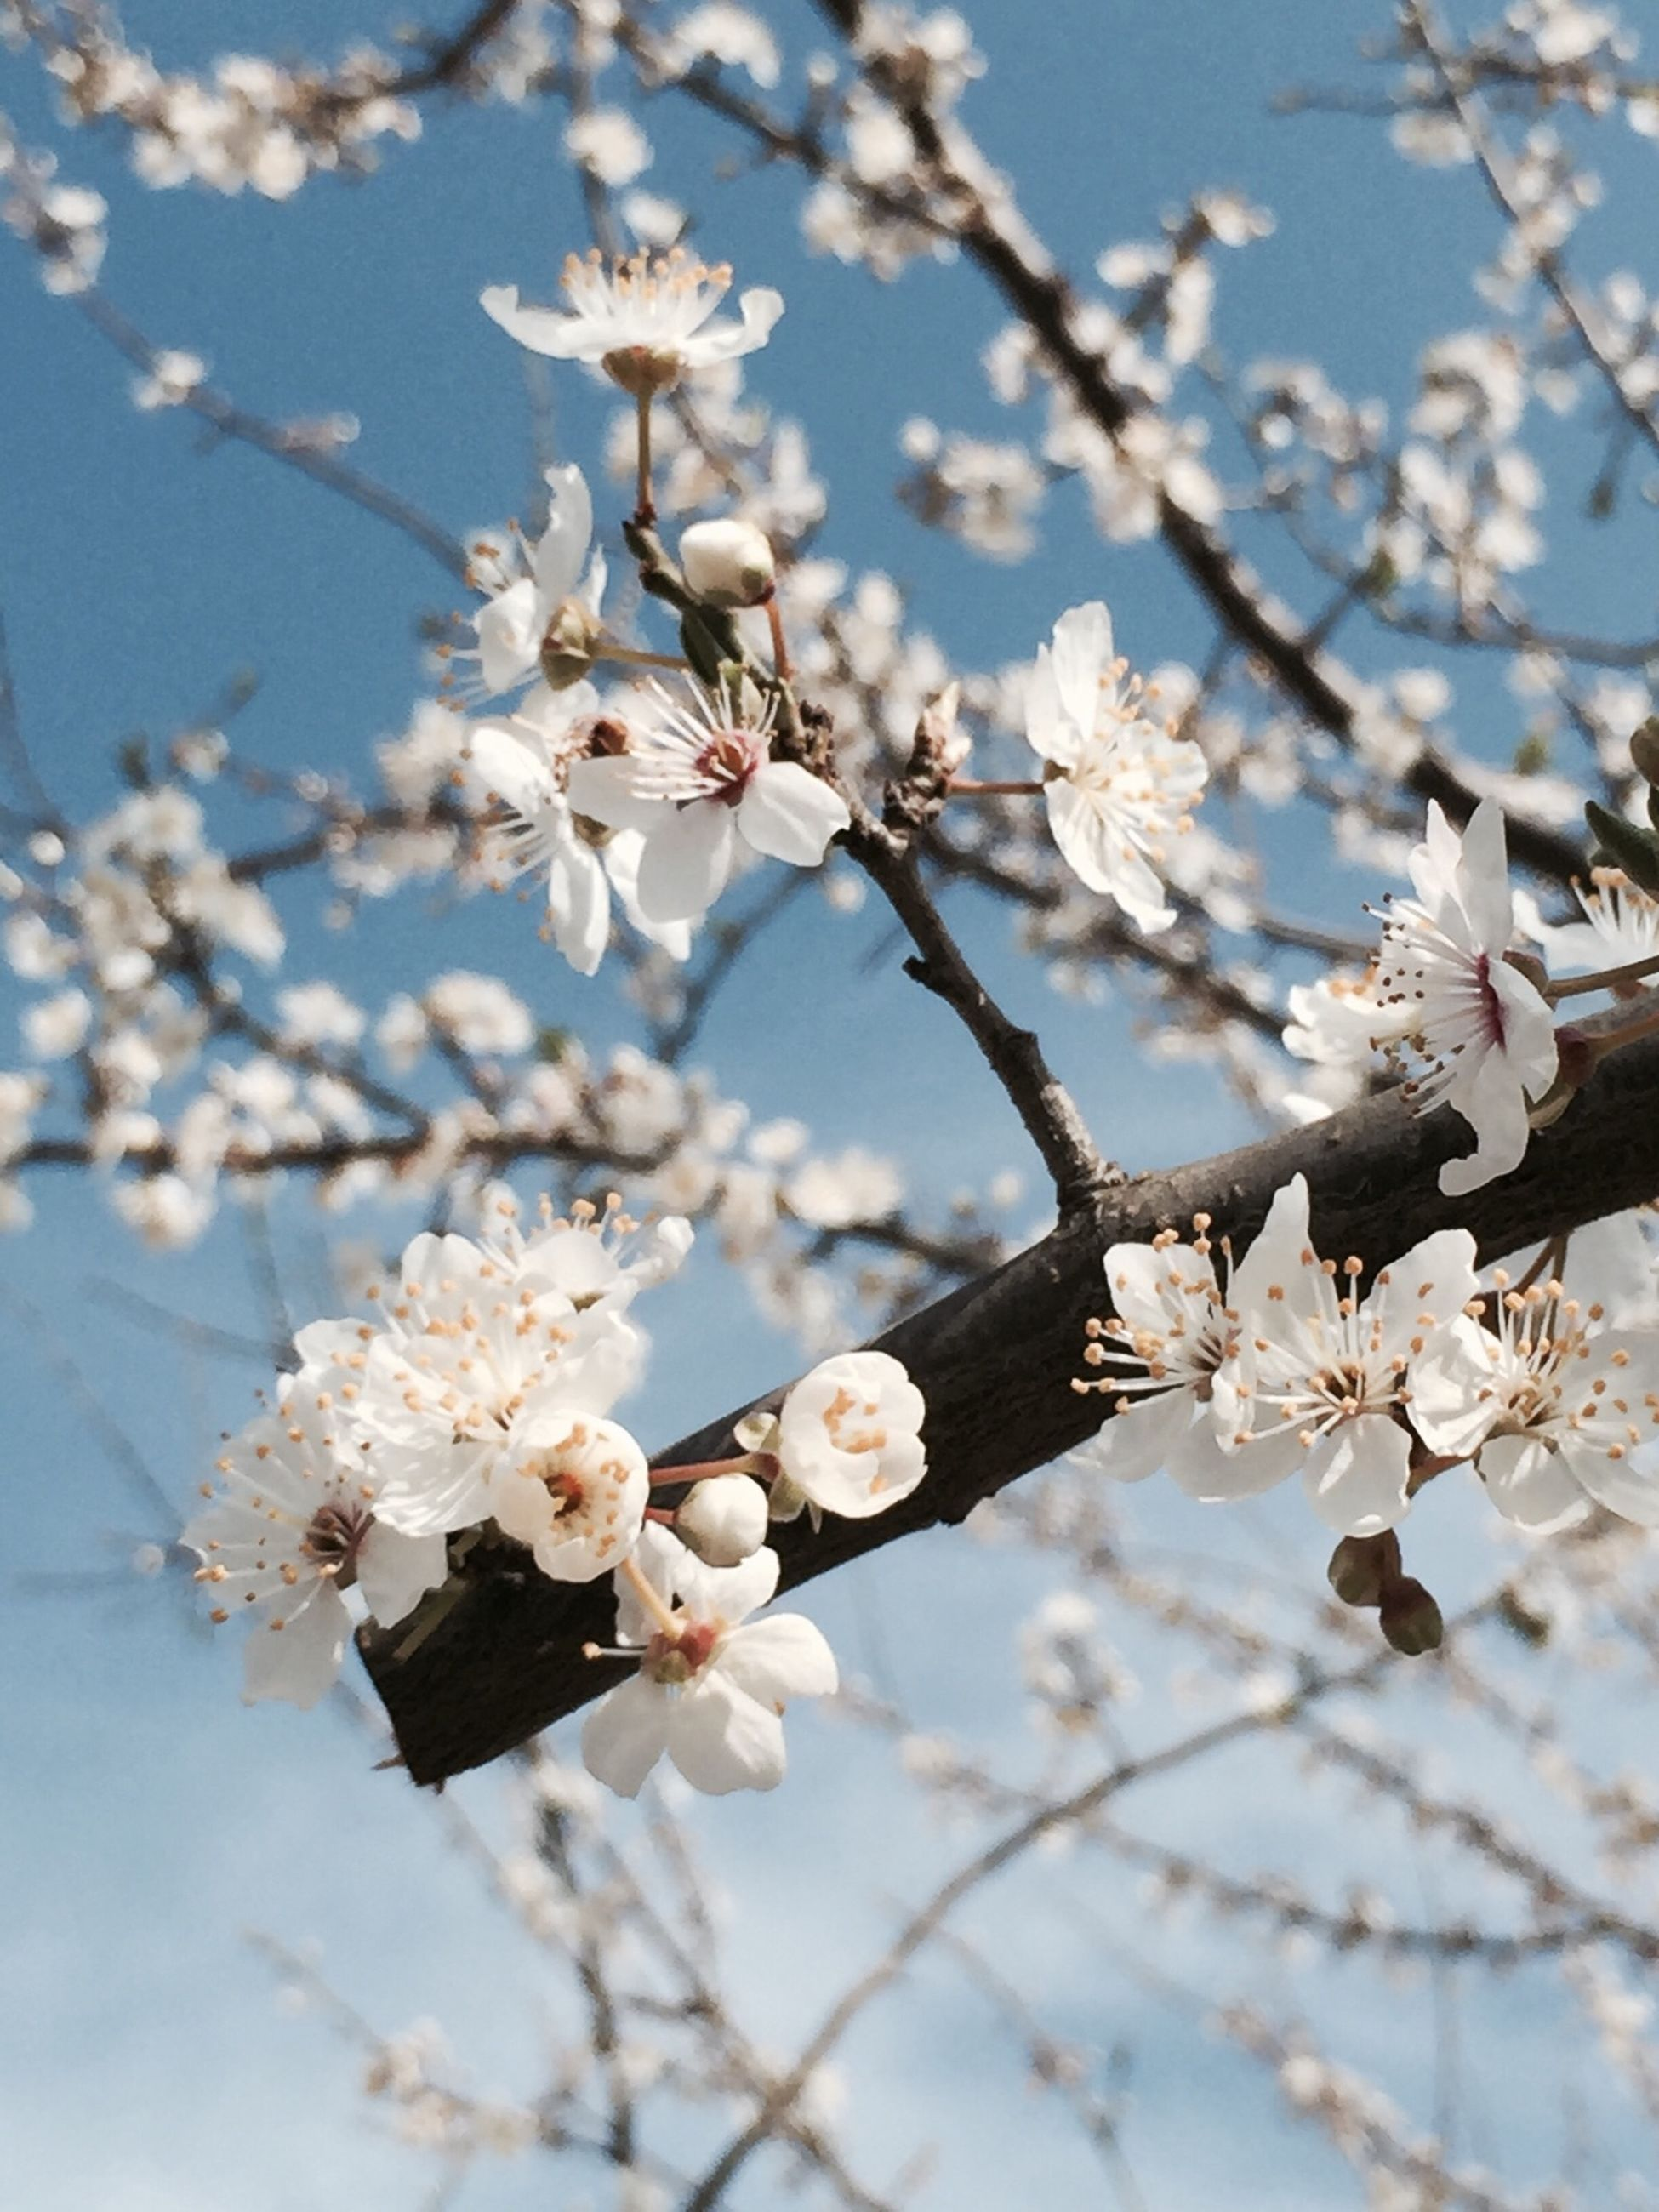 flower, branch, freshness, cherry blossom, tree, fragility, blossom, cherry tree, growth, white color, beauty in nature, nature, apple blossom, apple tree, petal, focus on foreground, twig, fruit tree, springtime, blooming